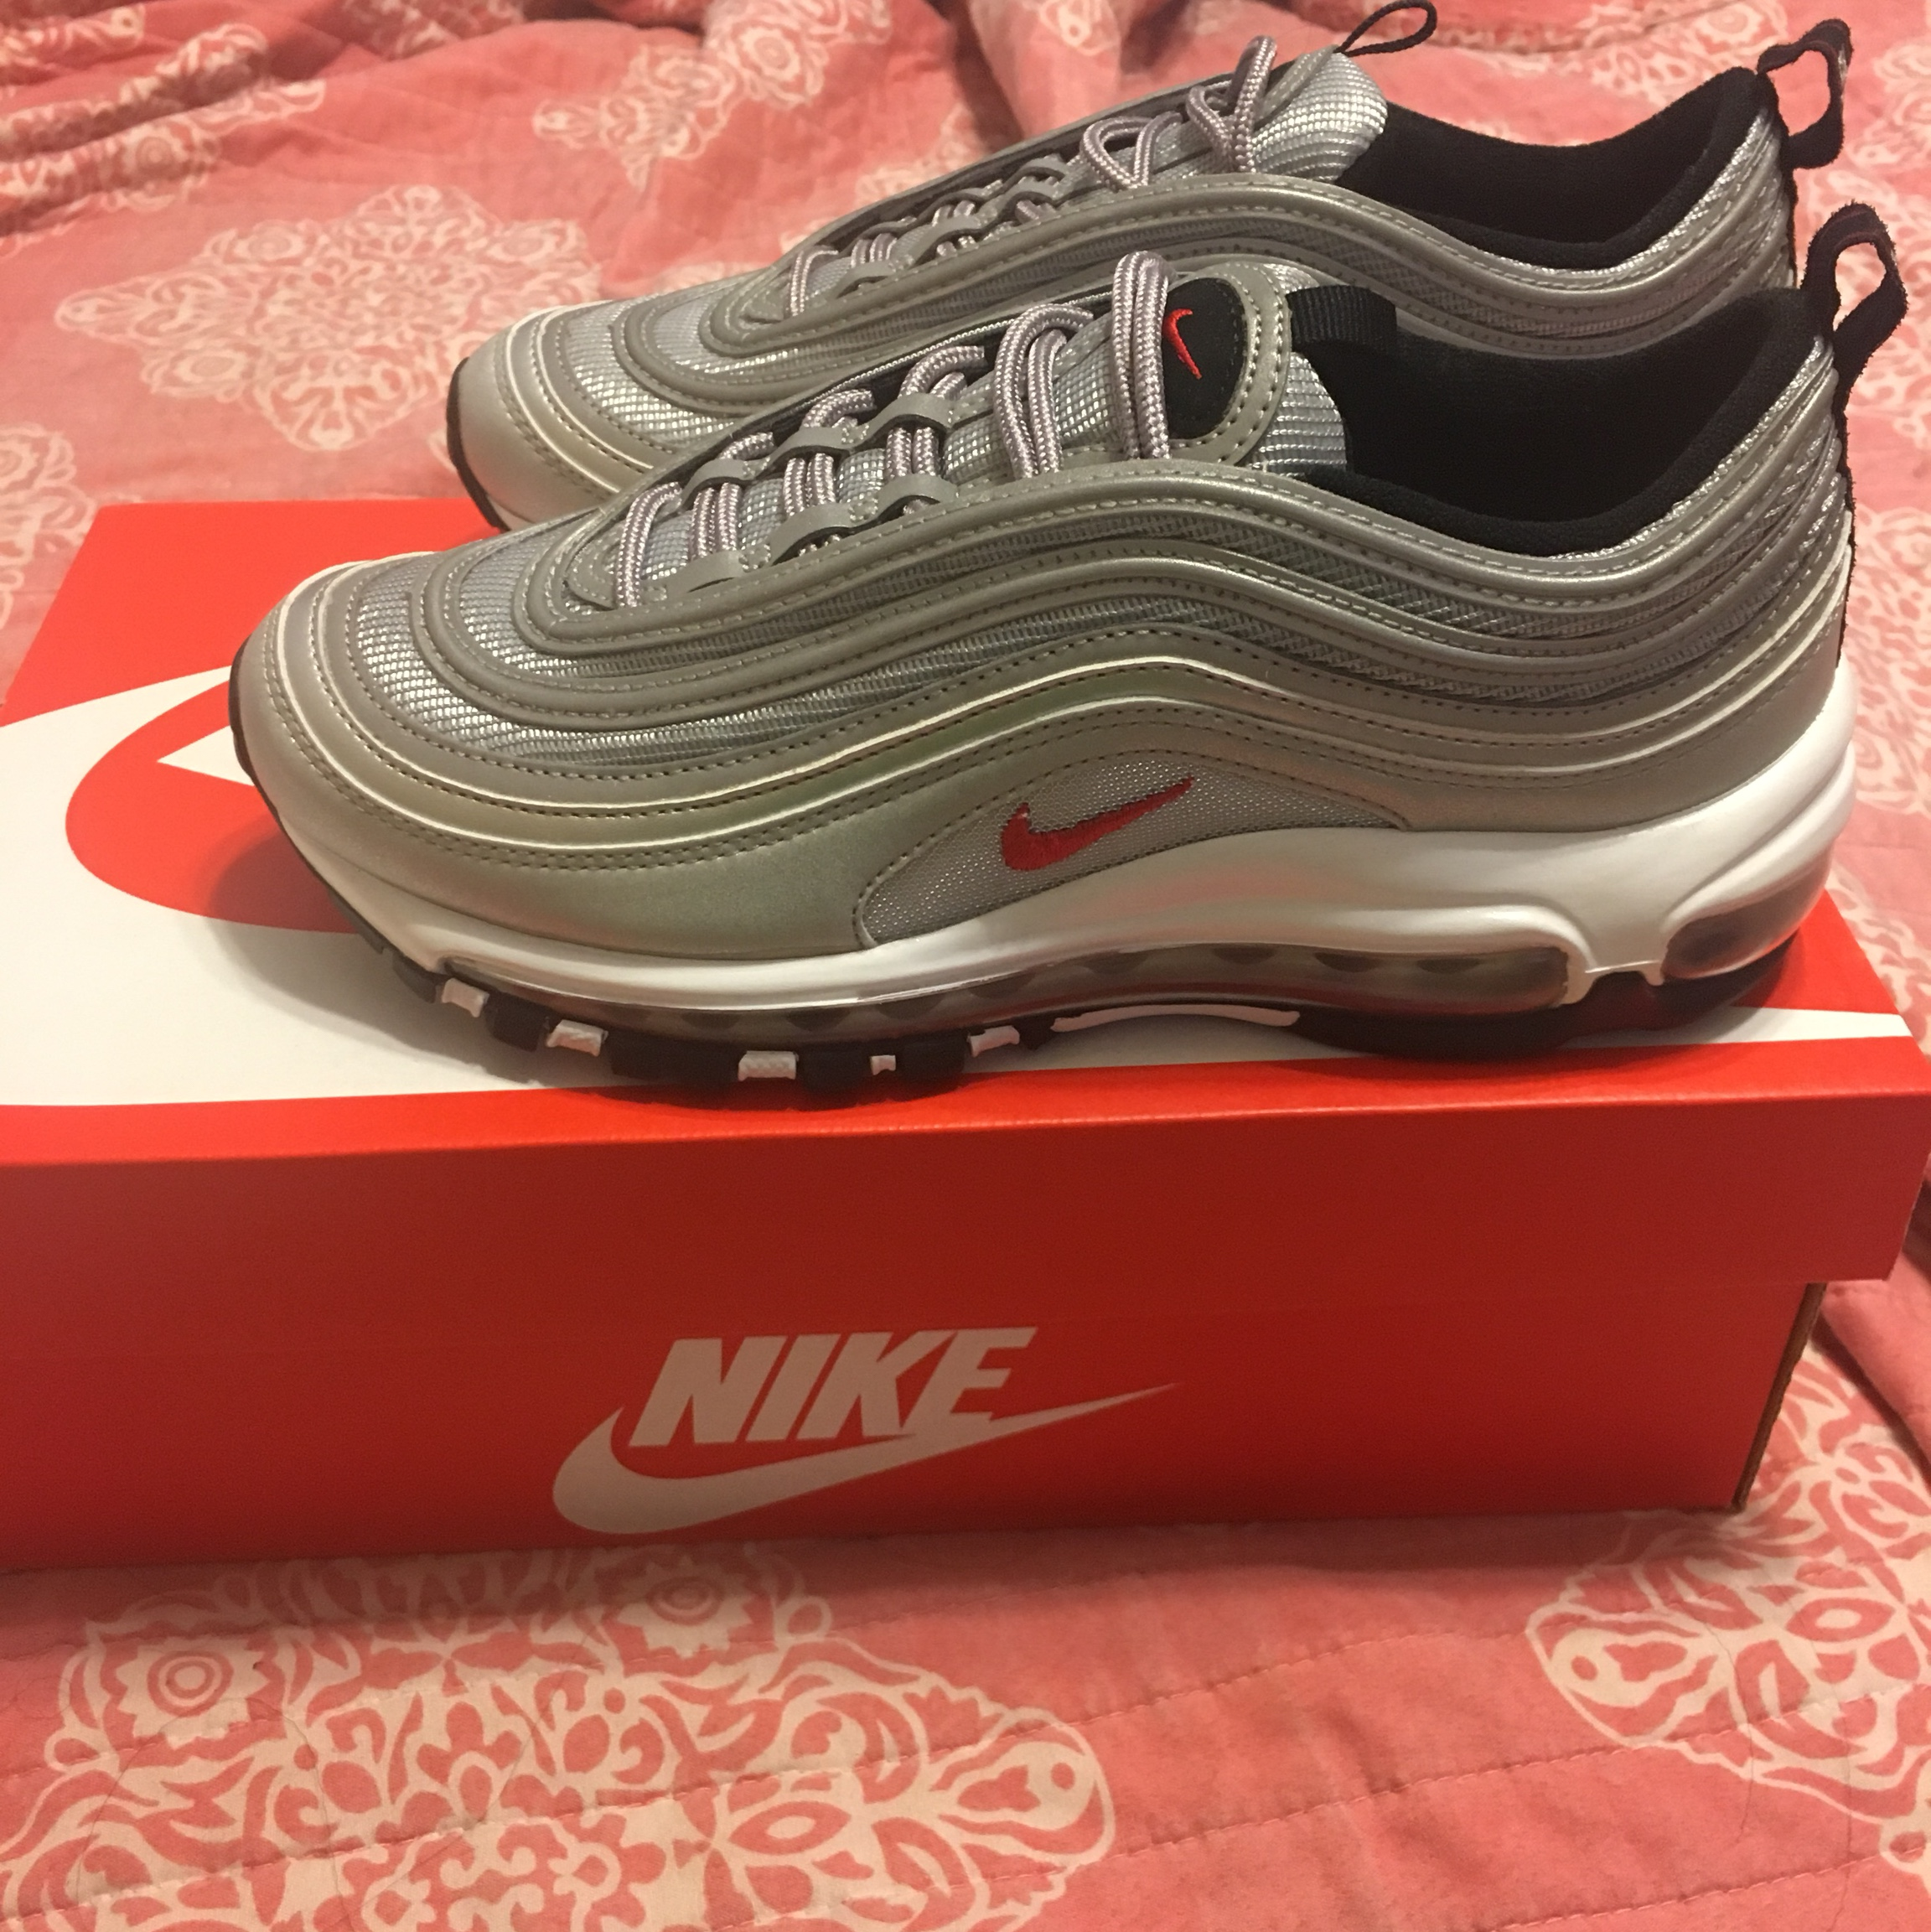 AIR MAX 97 SILVER BULLET YOUTH 5.5 (women's 67) I Depop